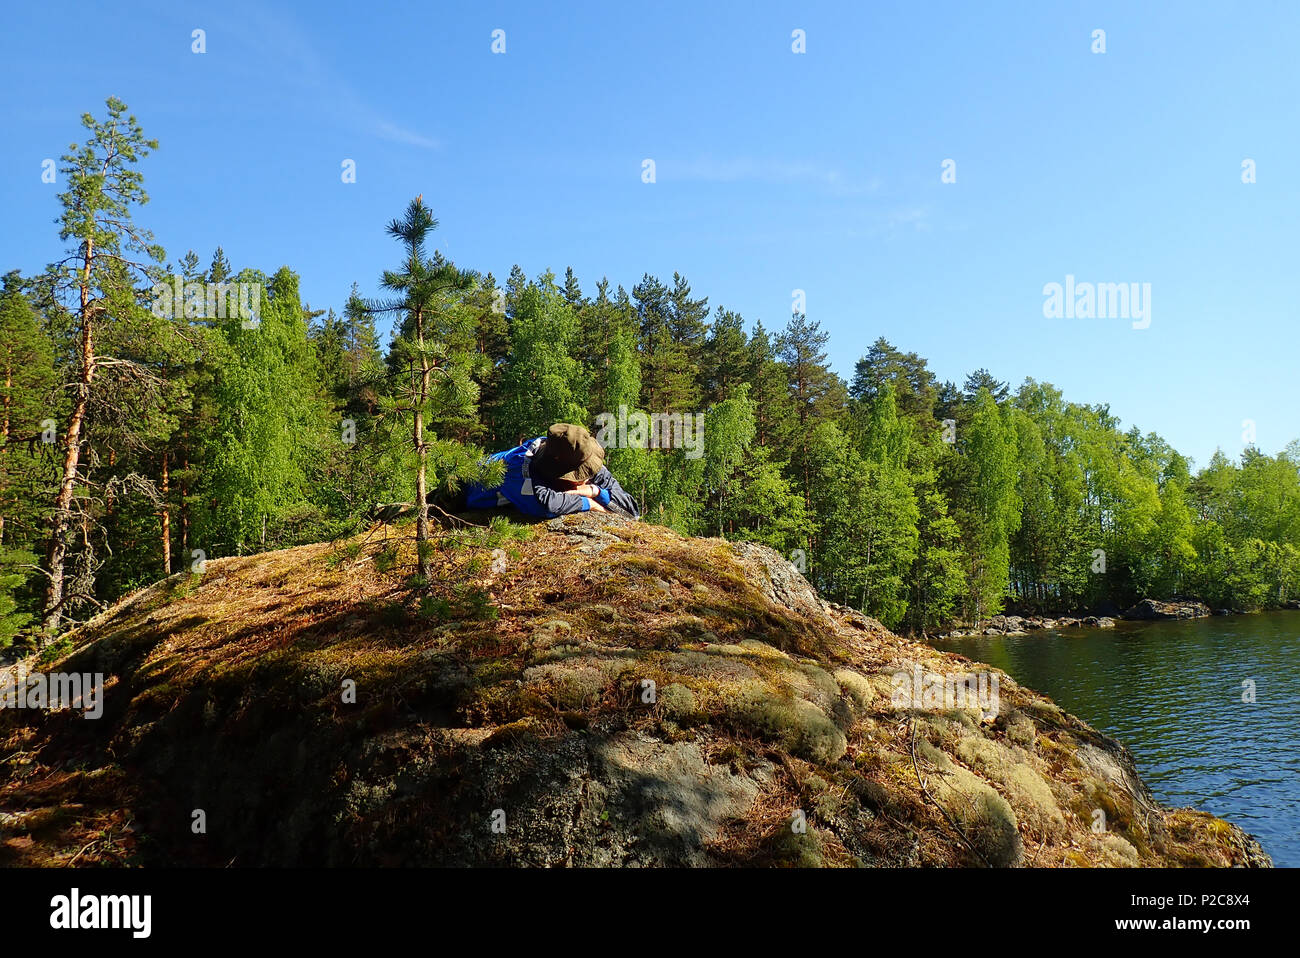 Relaxing in nature. Lake Kukkia, Luopioinen, Finland. 25.5.2018 - Stock Image